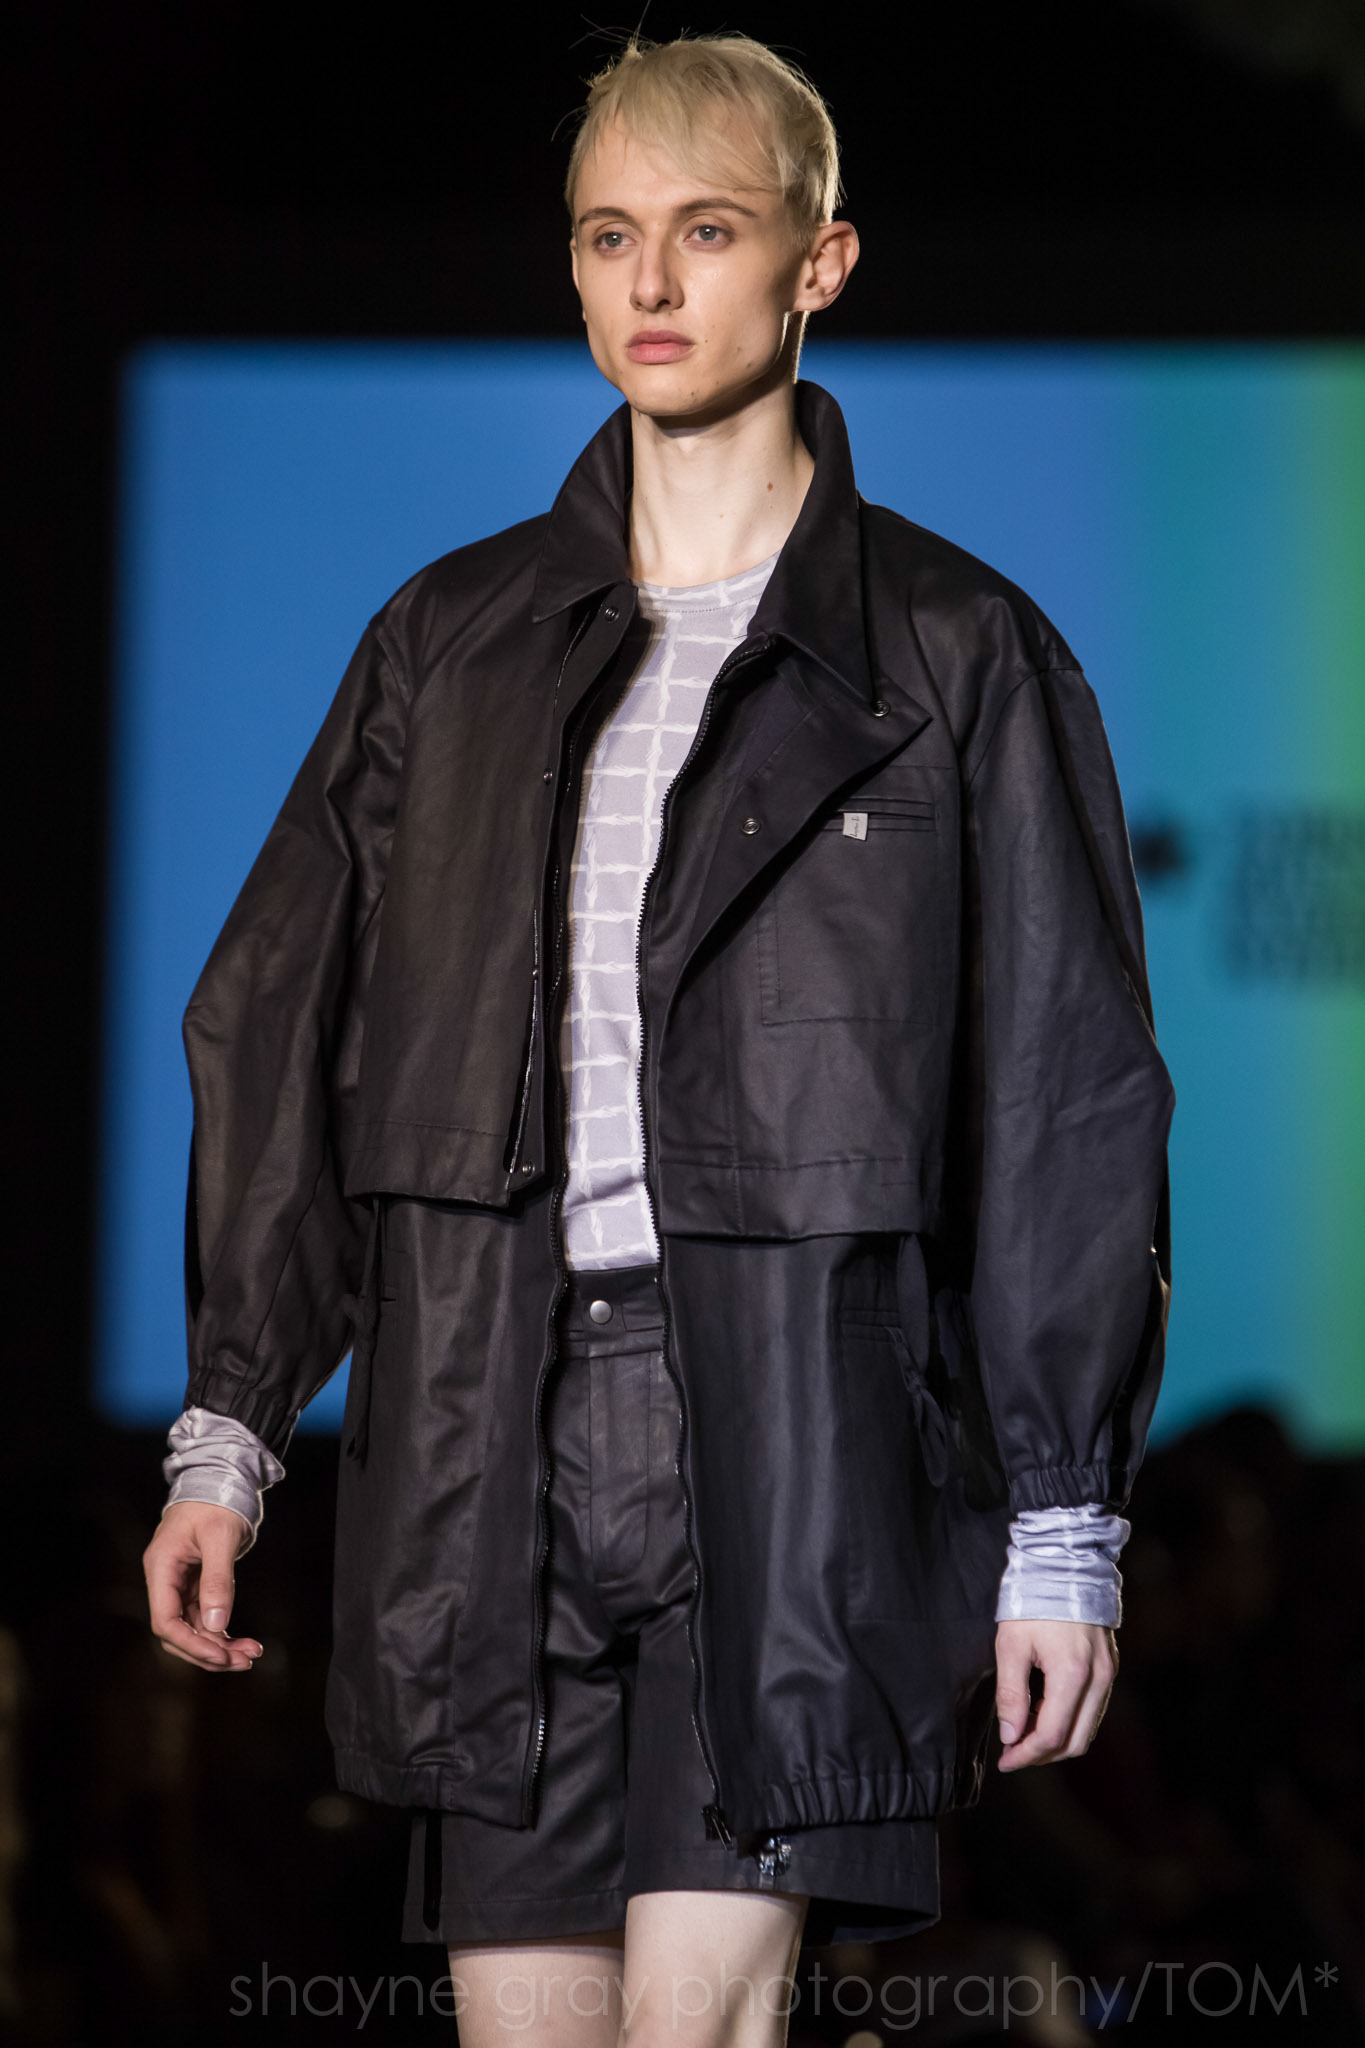 Shayne-Gray-Toronto-men's-fashion_week-TOM-christian-l'enfant-roi-6771.jpg